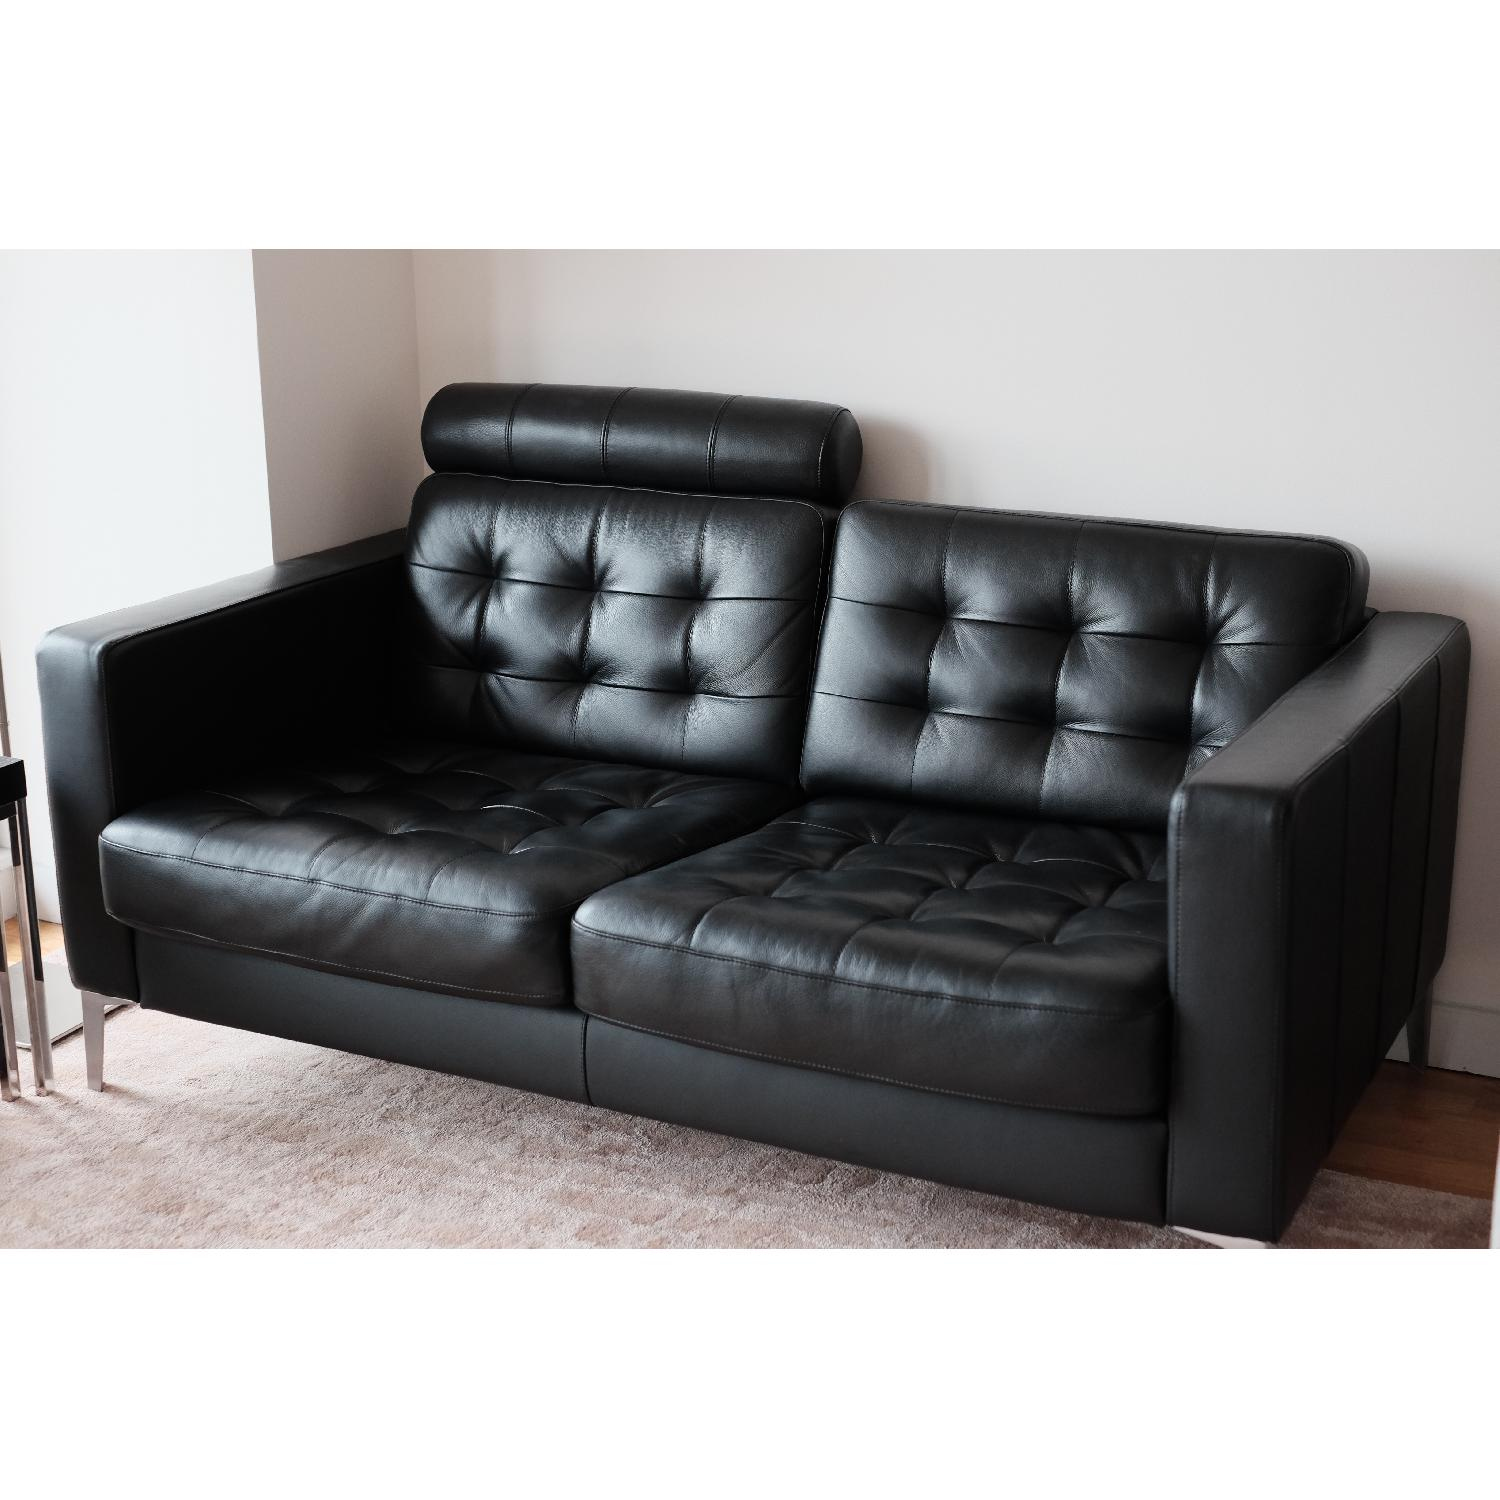 Ikea Karlstad Black Leather Loveseat ...